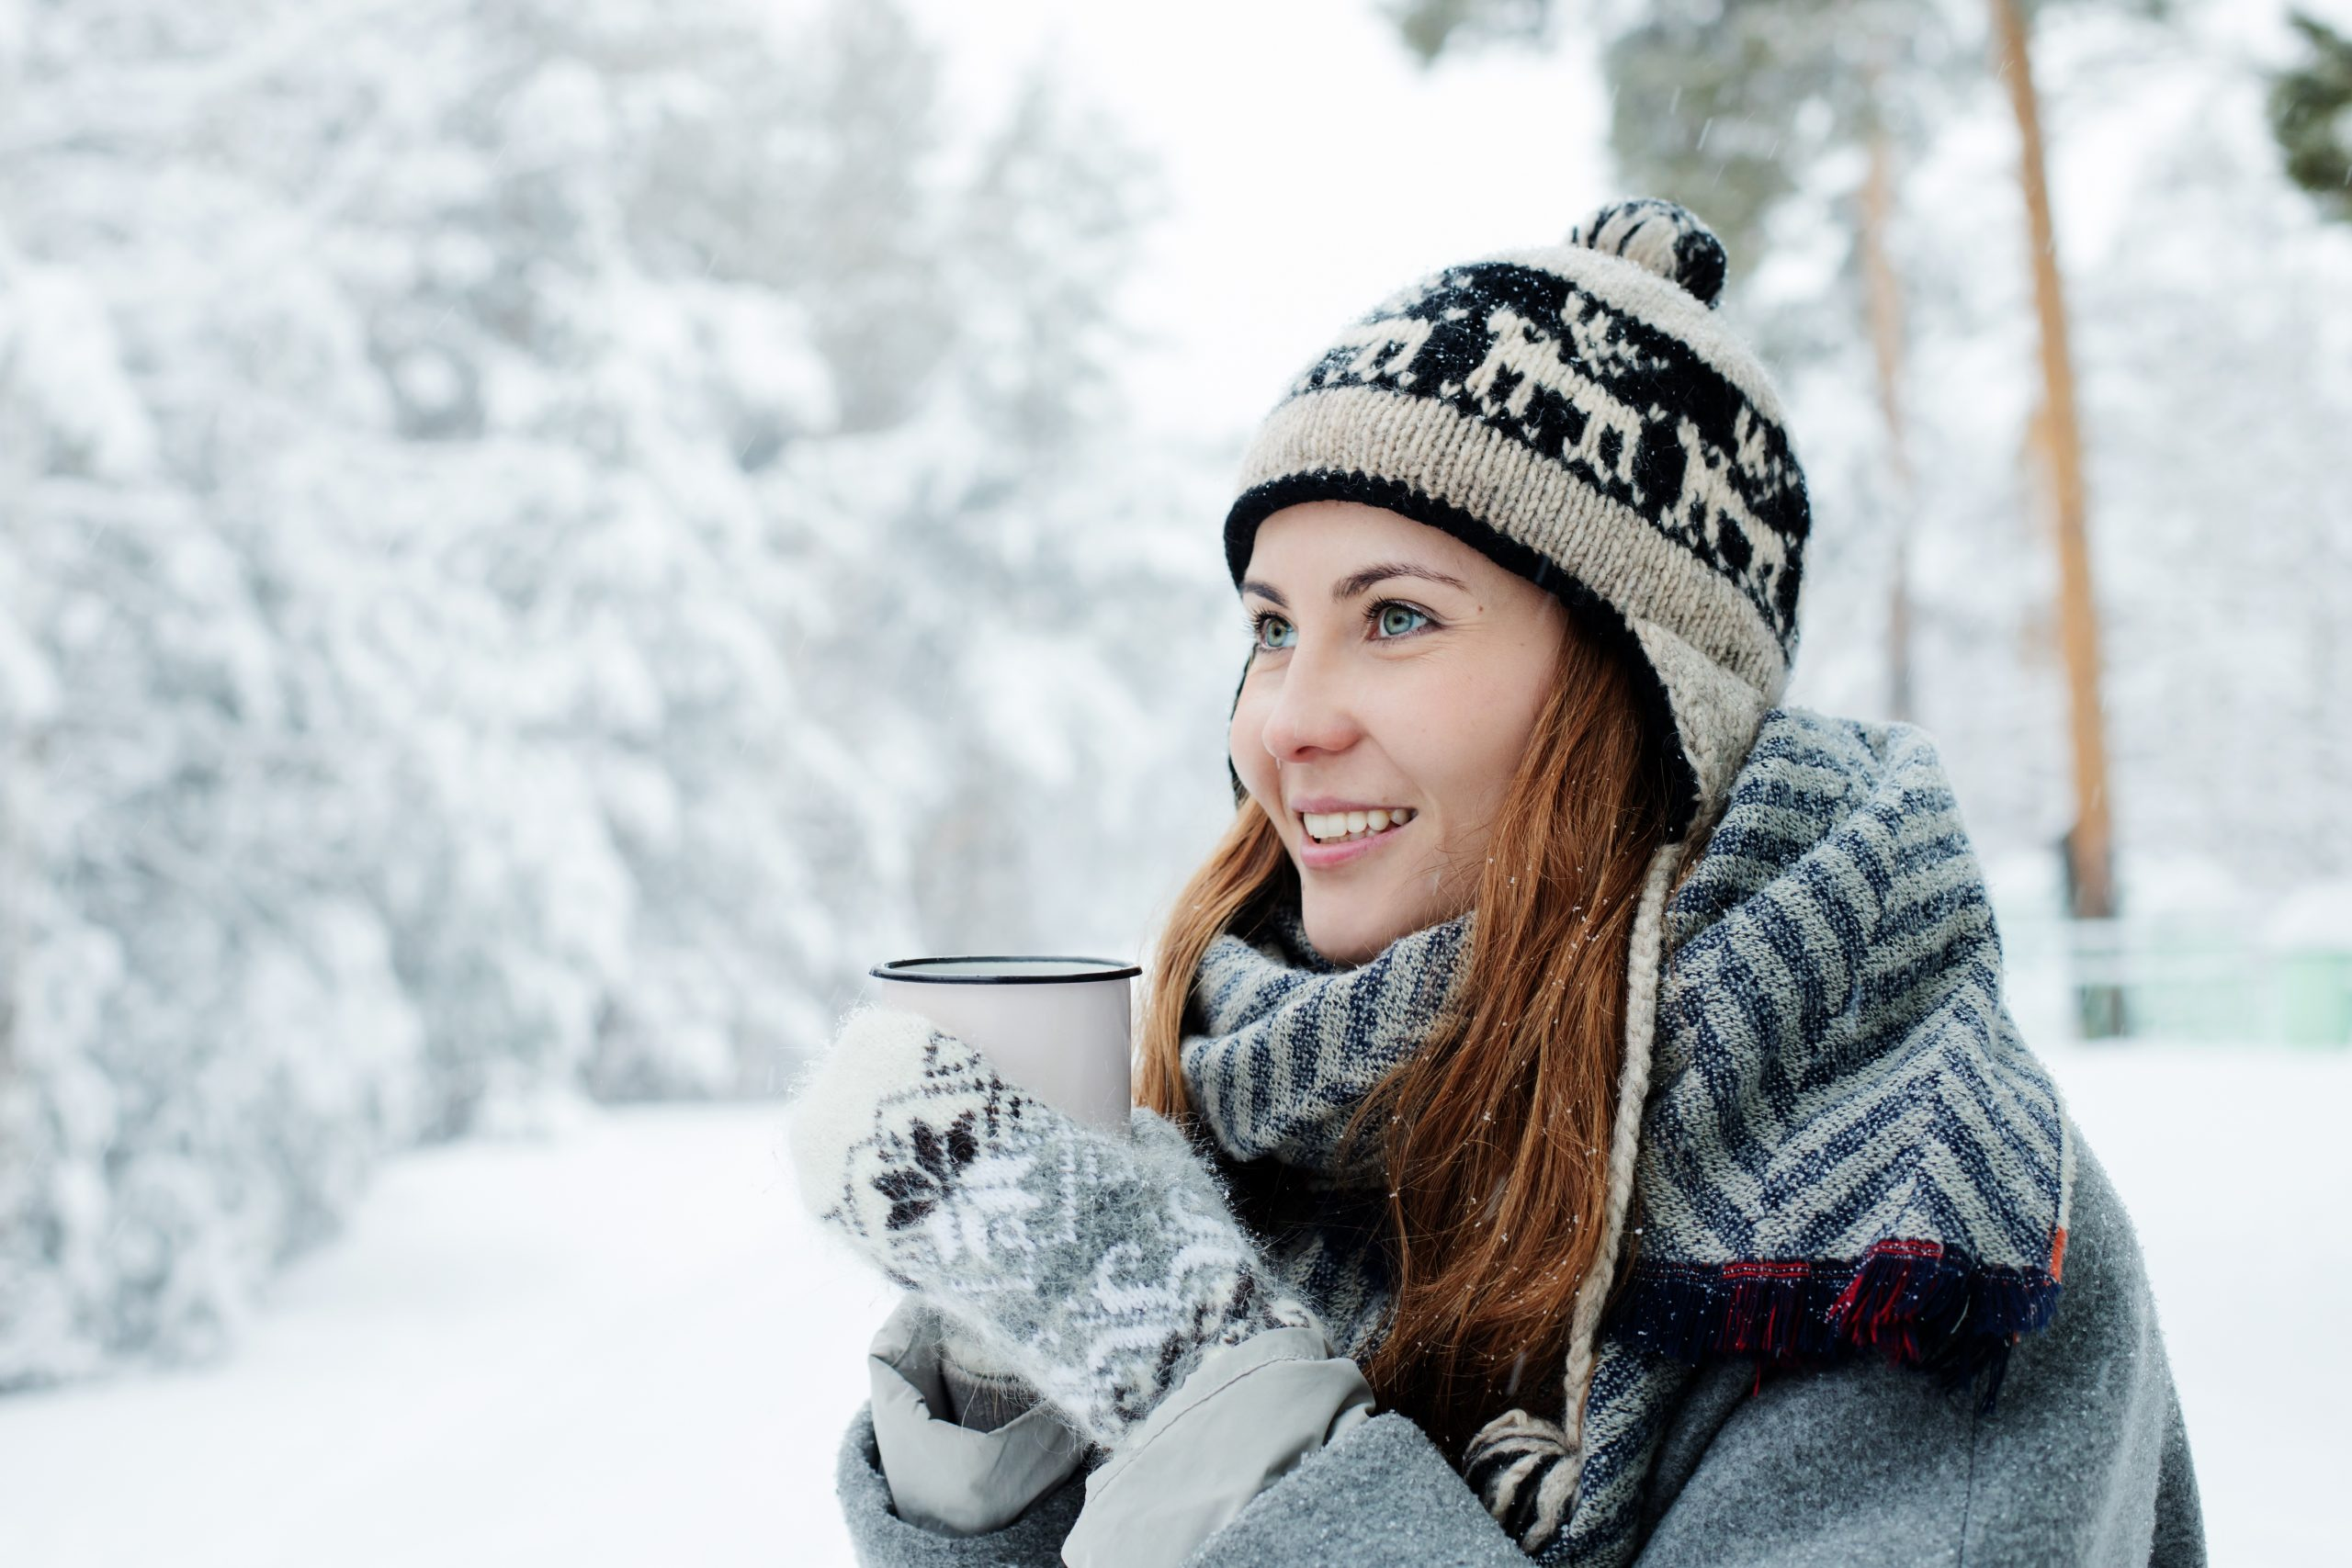 Woman dressed warmly for winter with hot beverage